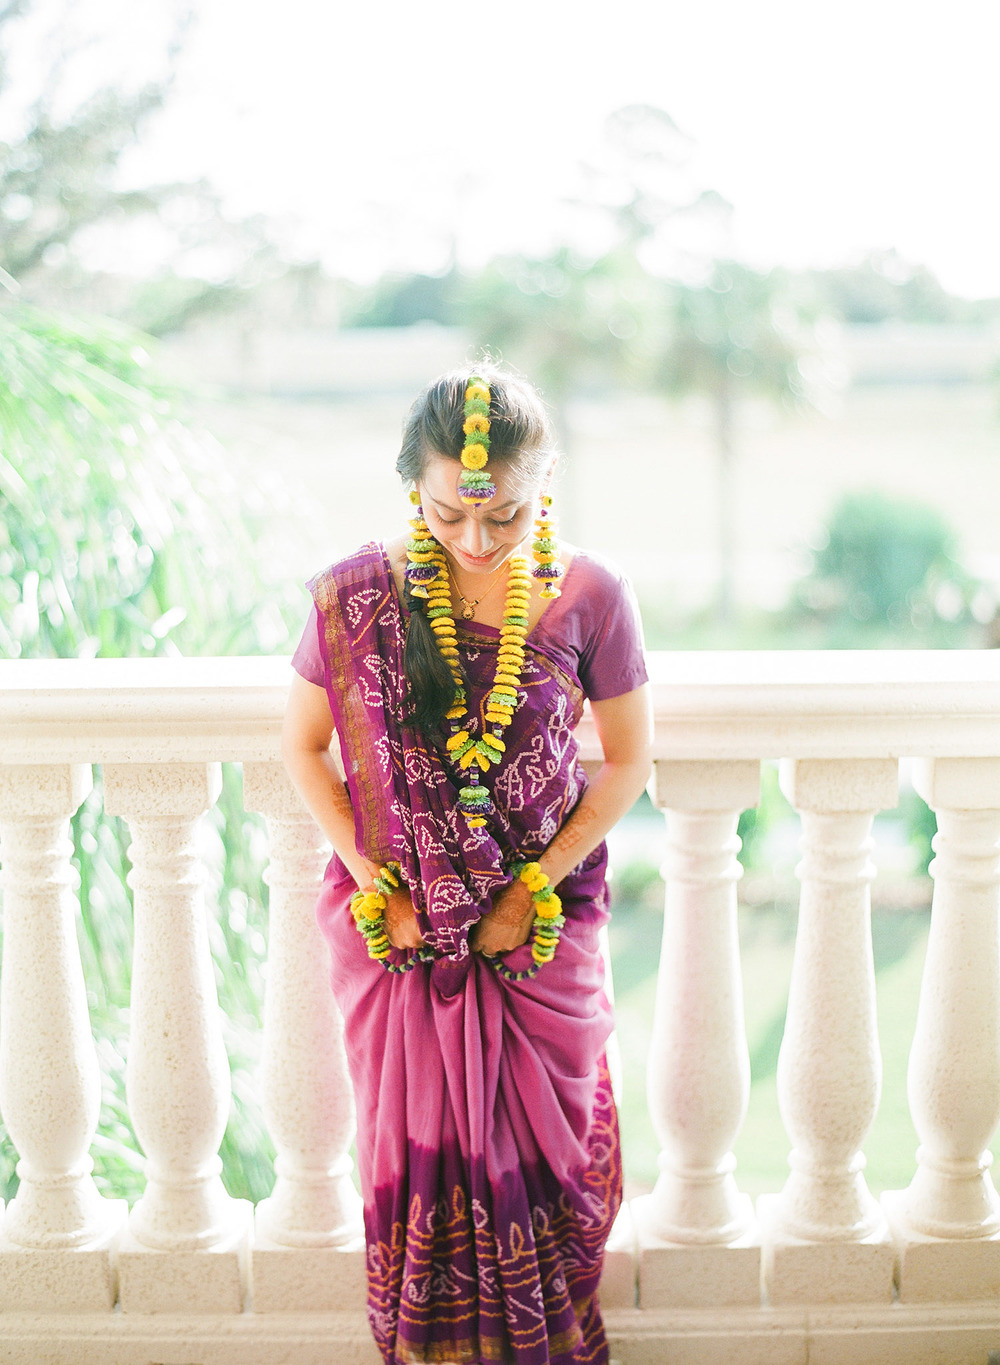 indian bride at her mehndi ceremony wearing a simple purple sari for her mehndi ceremony and yellow floral jewelry and floral tikka headpiece for her indian wedding in palm coast florida at the hammock beach resort photographed by Destination Wedding Photographer Lexia Frank, a top indian wedding photographer who shoots Indian weddings on film and shoots luxury indian weddings in florida and worldwide